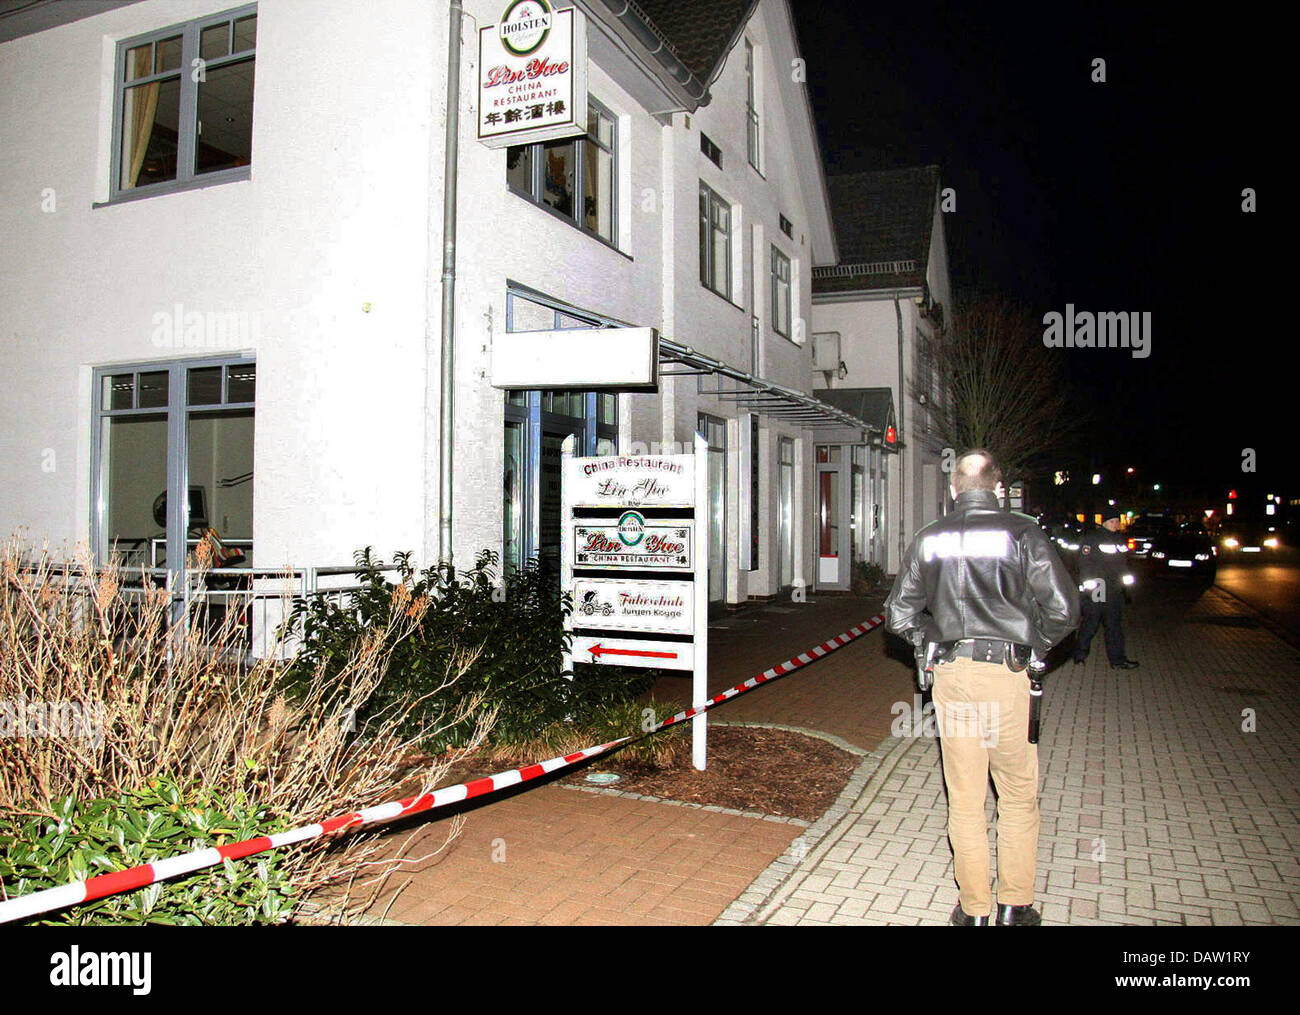 Police officers secure a crime site near a Chinese restaurant in Sittensen, Germany, Monday, 05 February 2007. Six - Stock Image